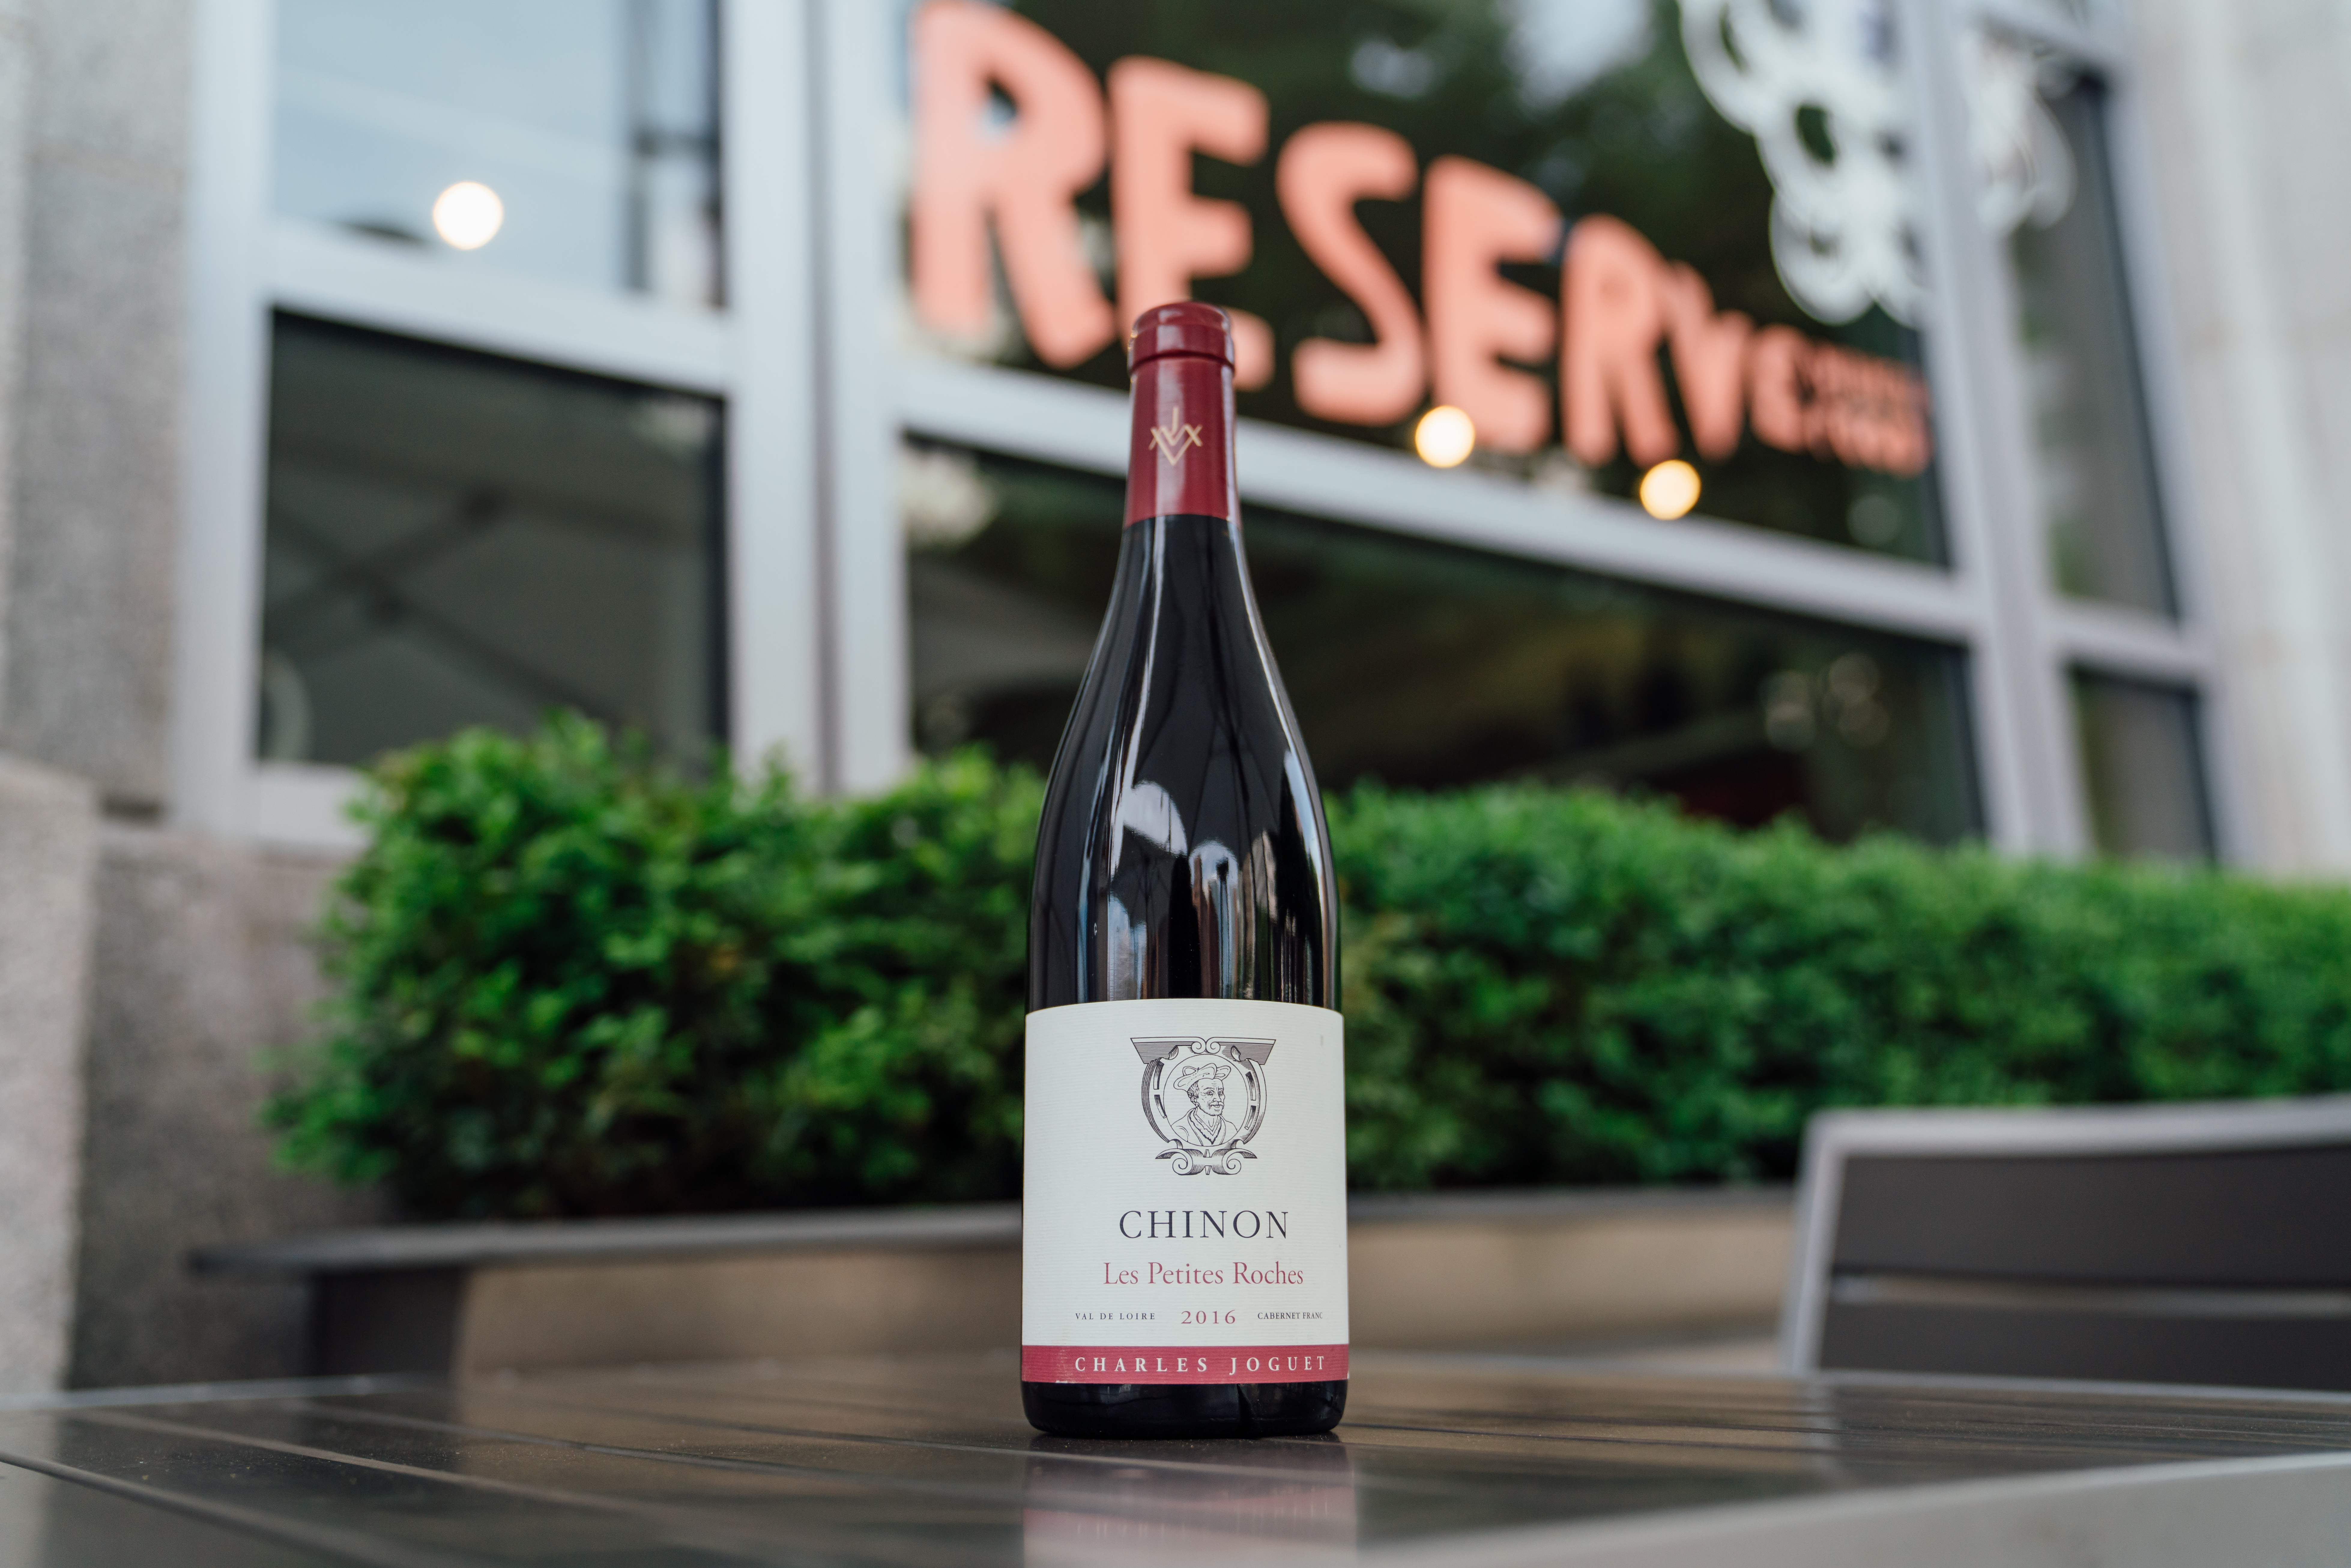 Wine of the Month: Charles Joguet 'Les Petites Roches' Chinon